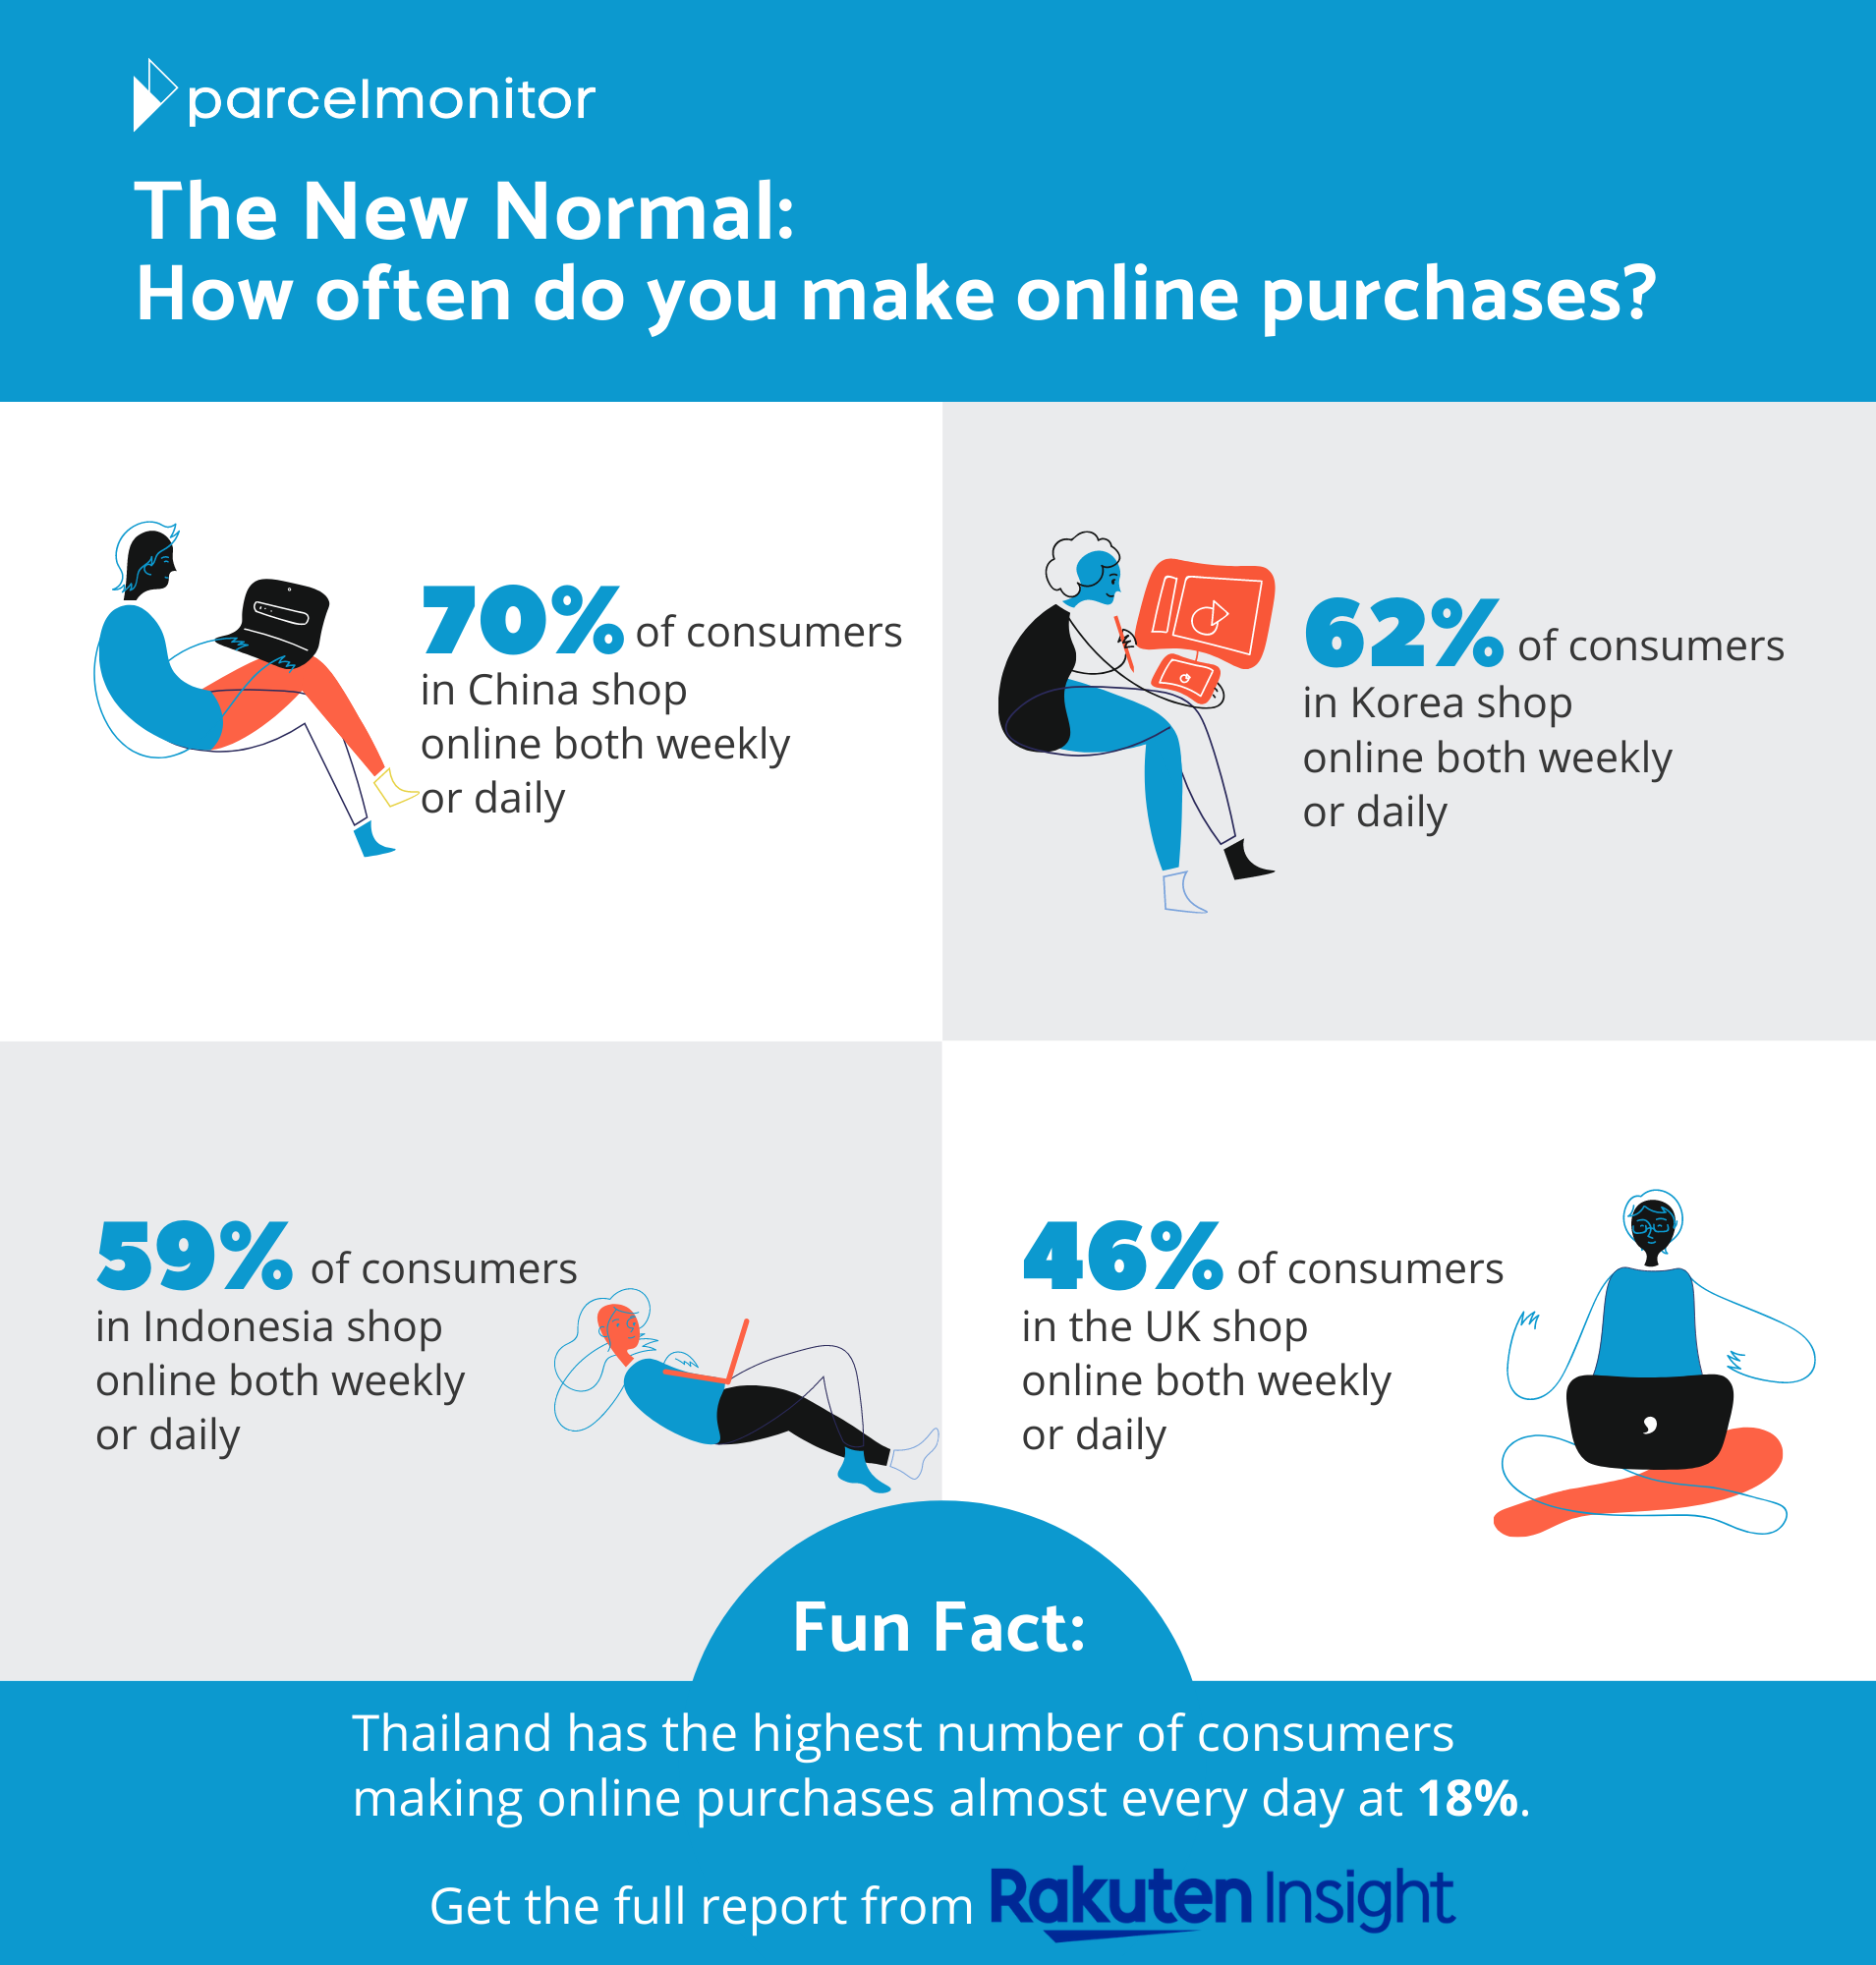 How often do you make online purchases?